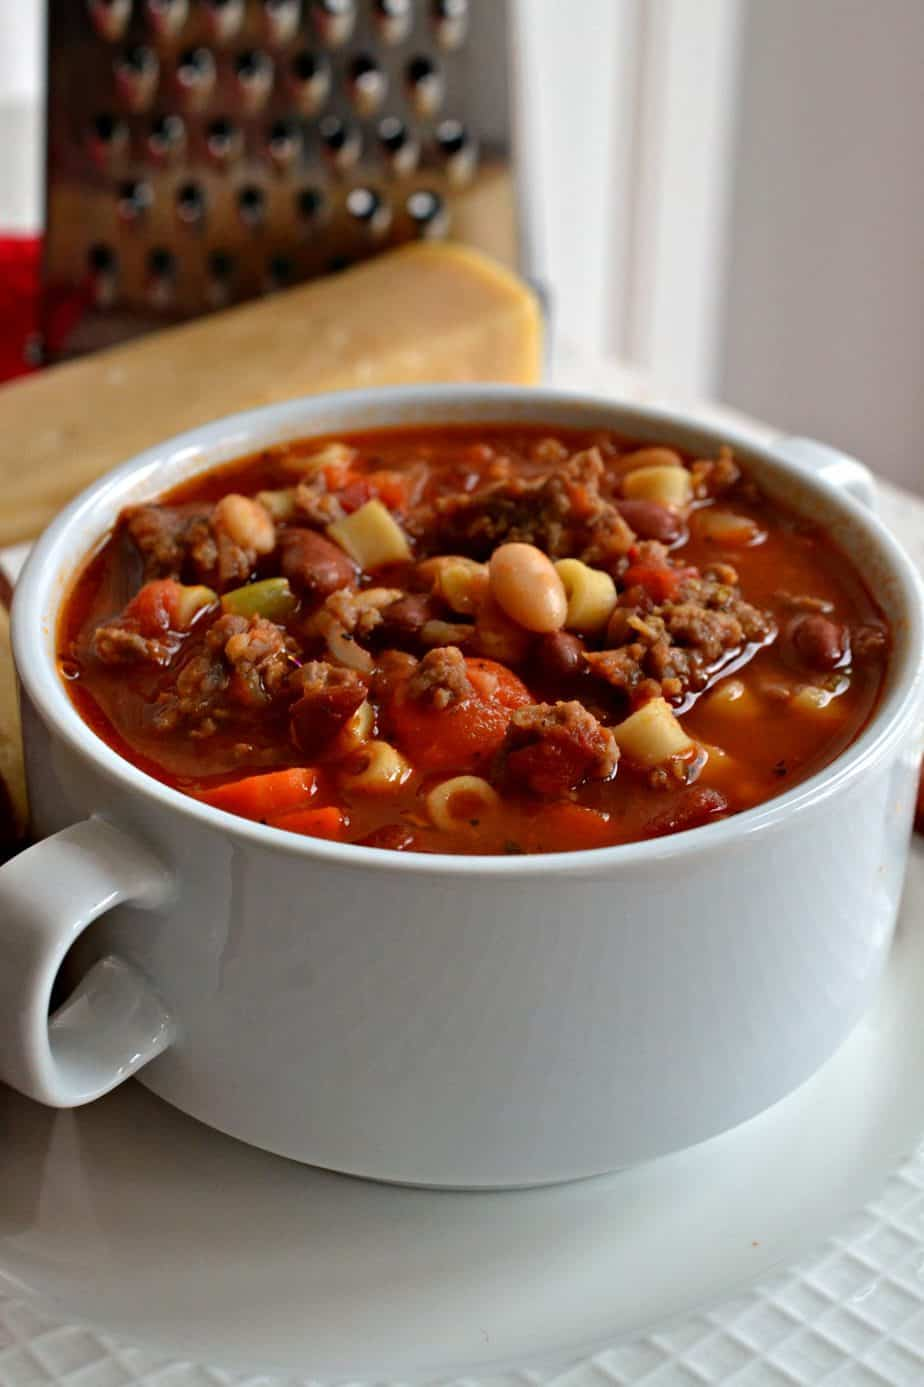 Pasta e Fagioli is a delectable Italian soup that combines Italian sausage, vegetables and beans in a rich tomato base.